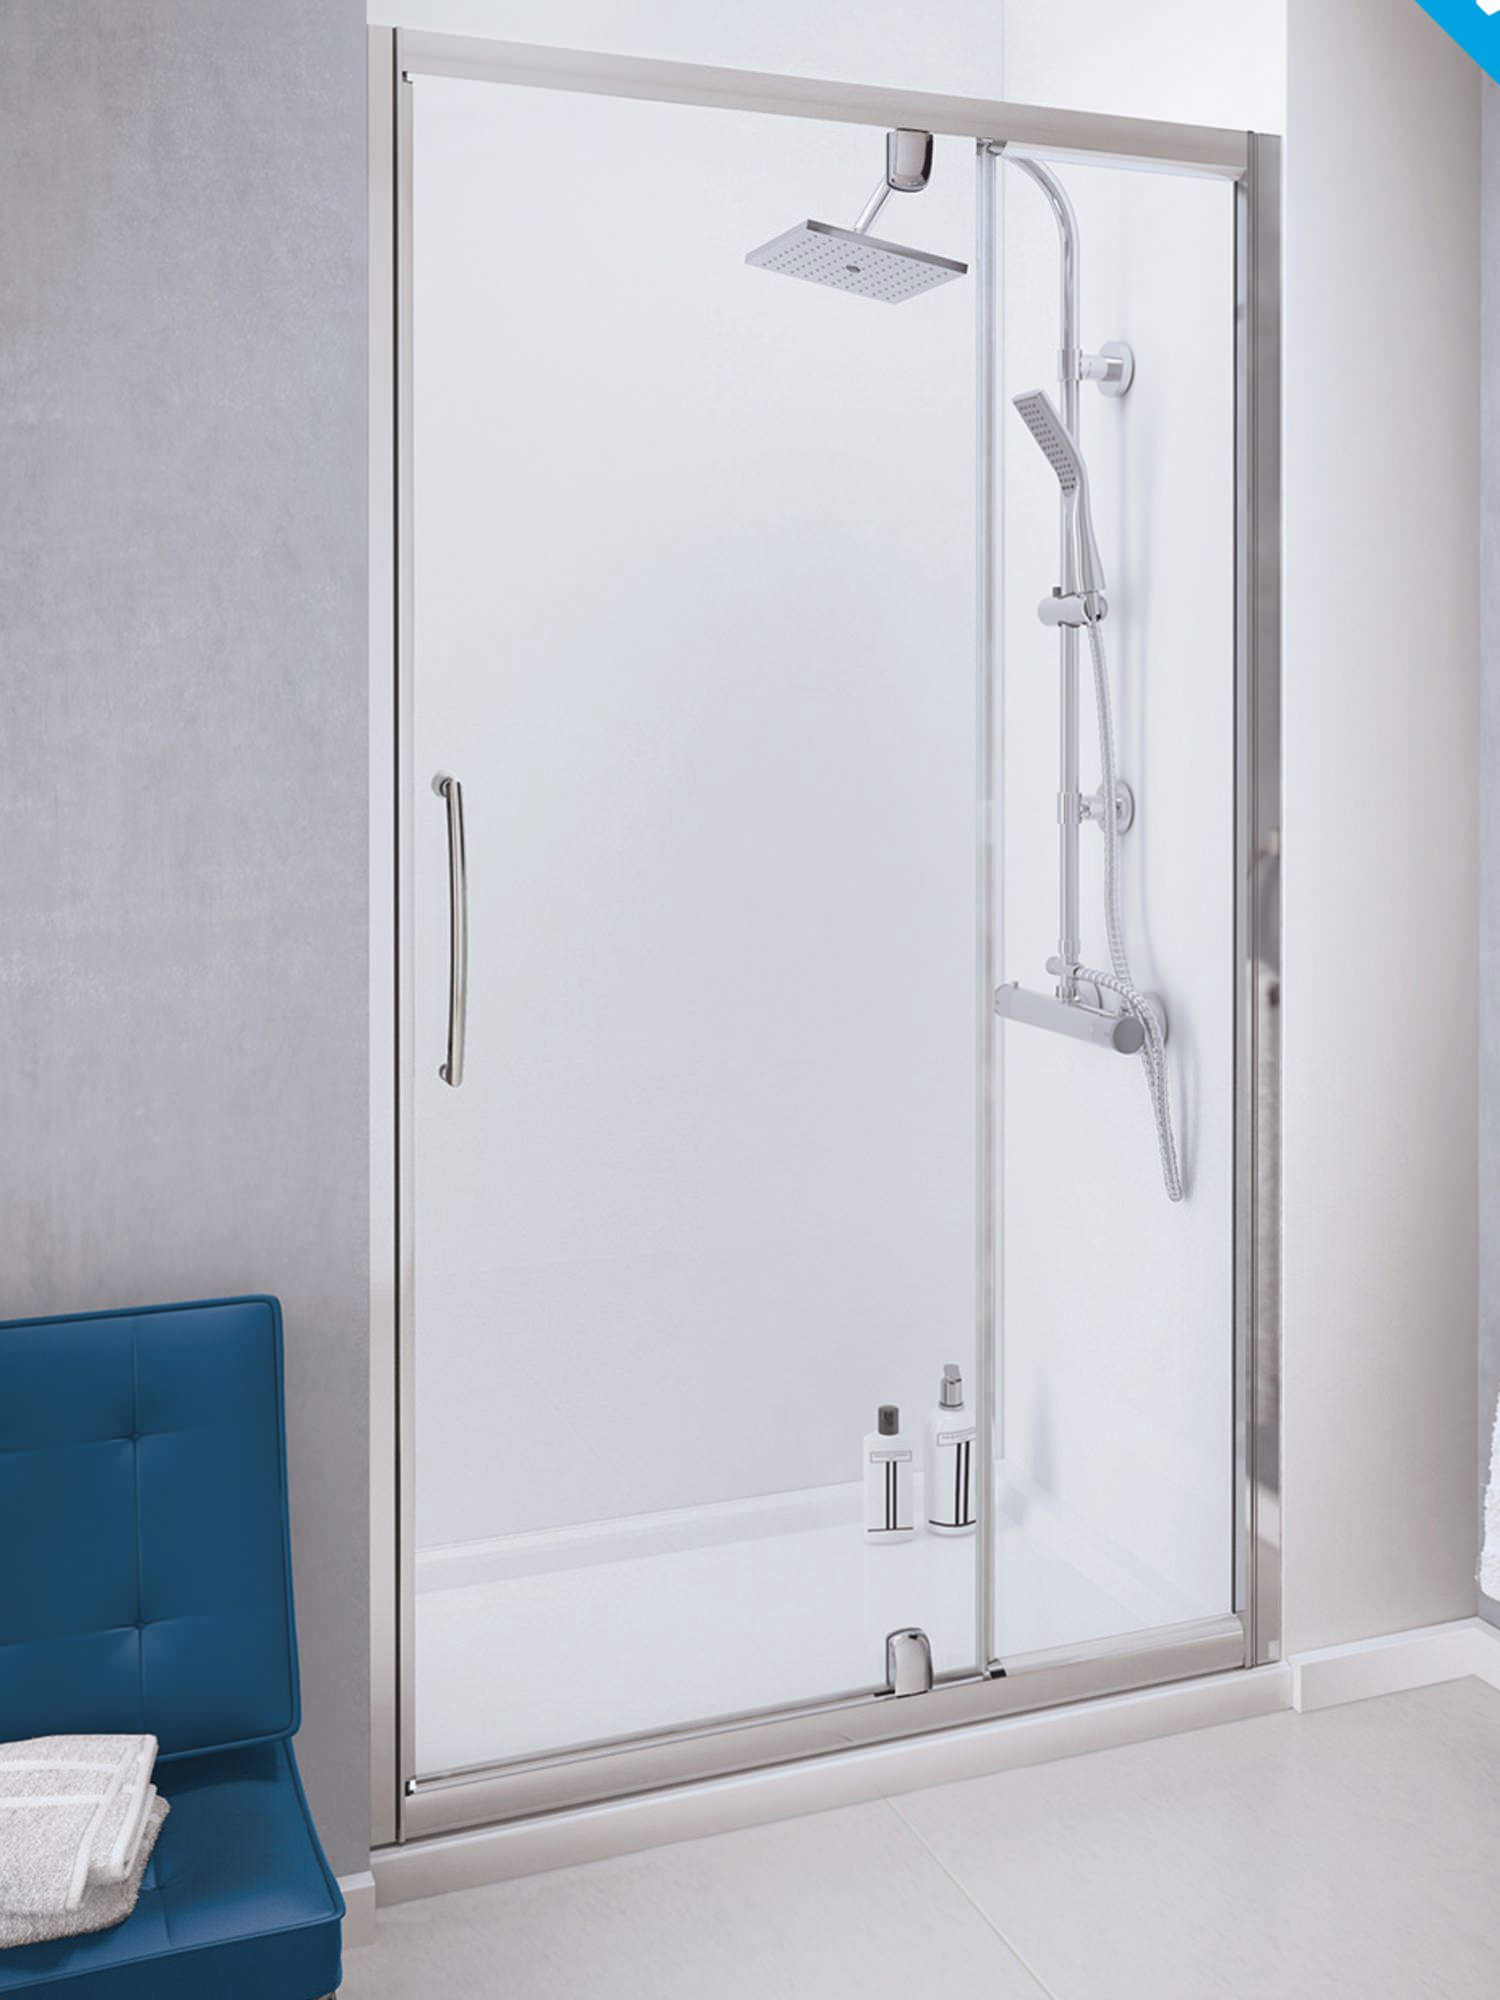 Lakes Classic 1000mm Semi Frameless Pivot Door With Integrated In Line Panel